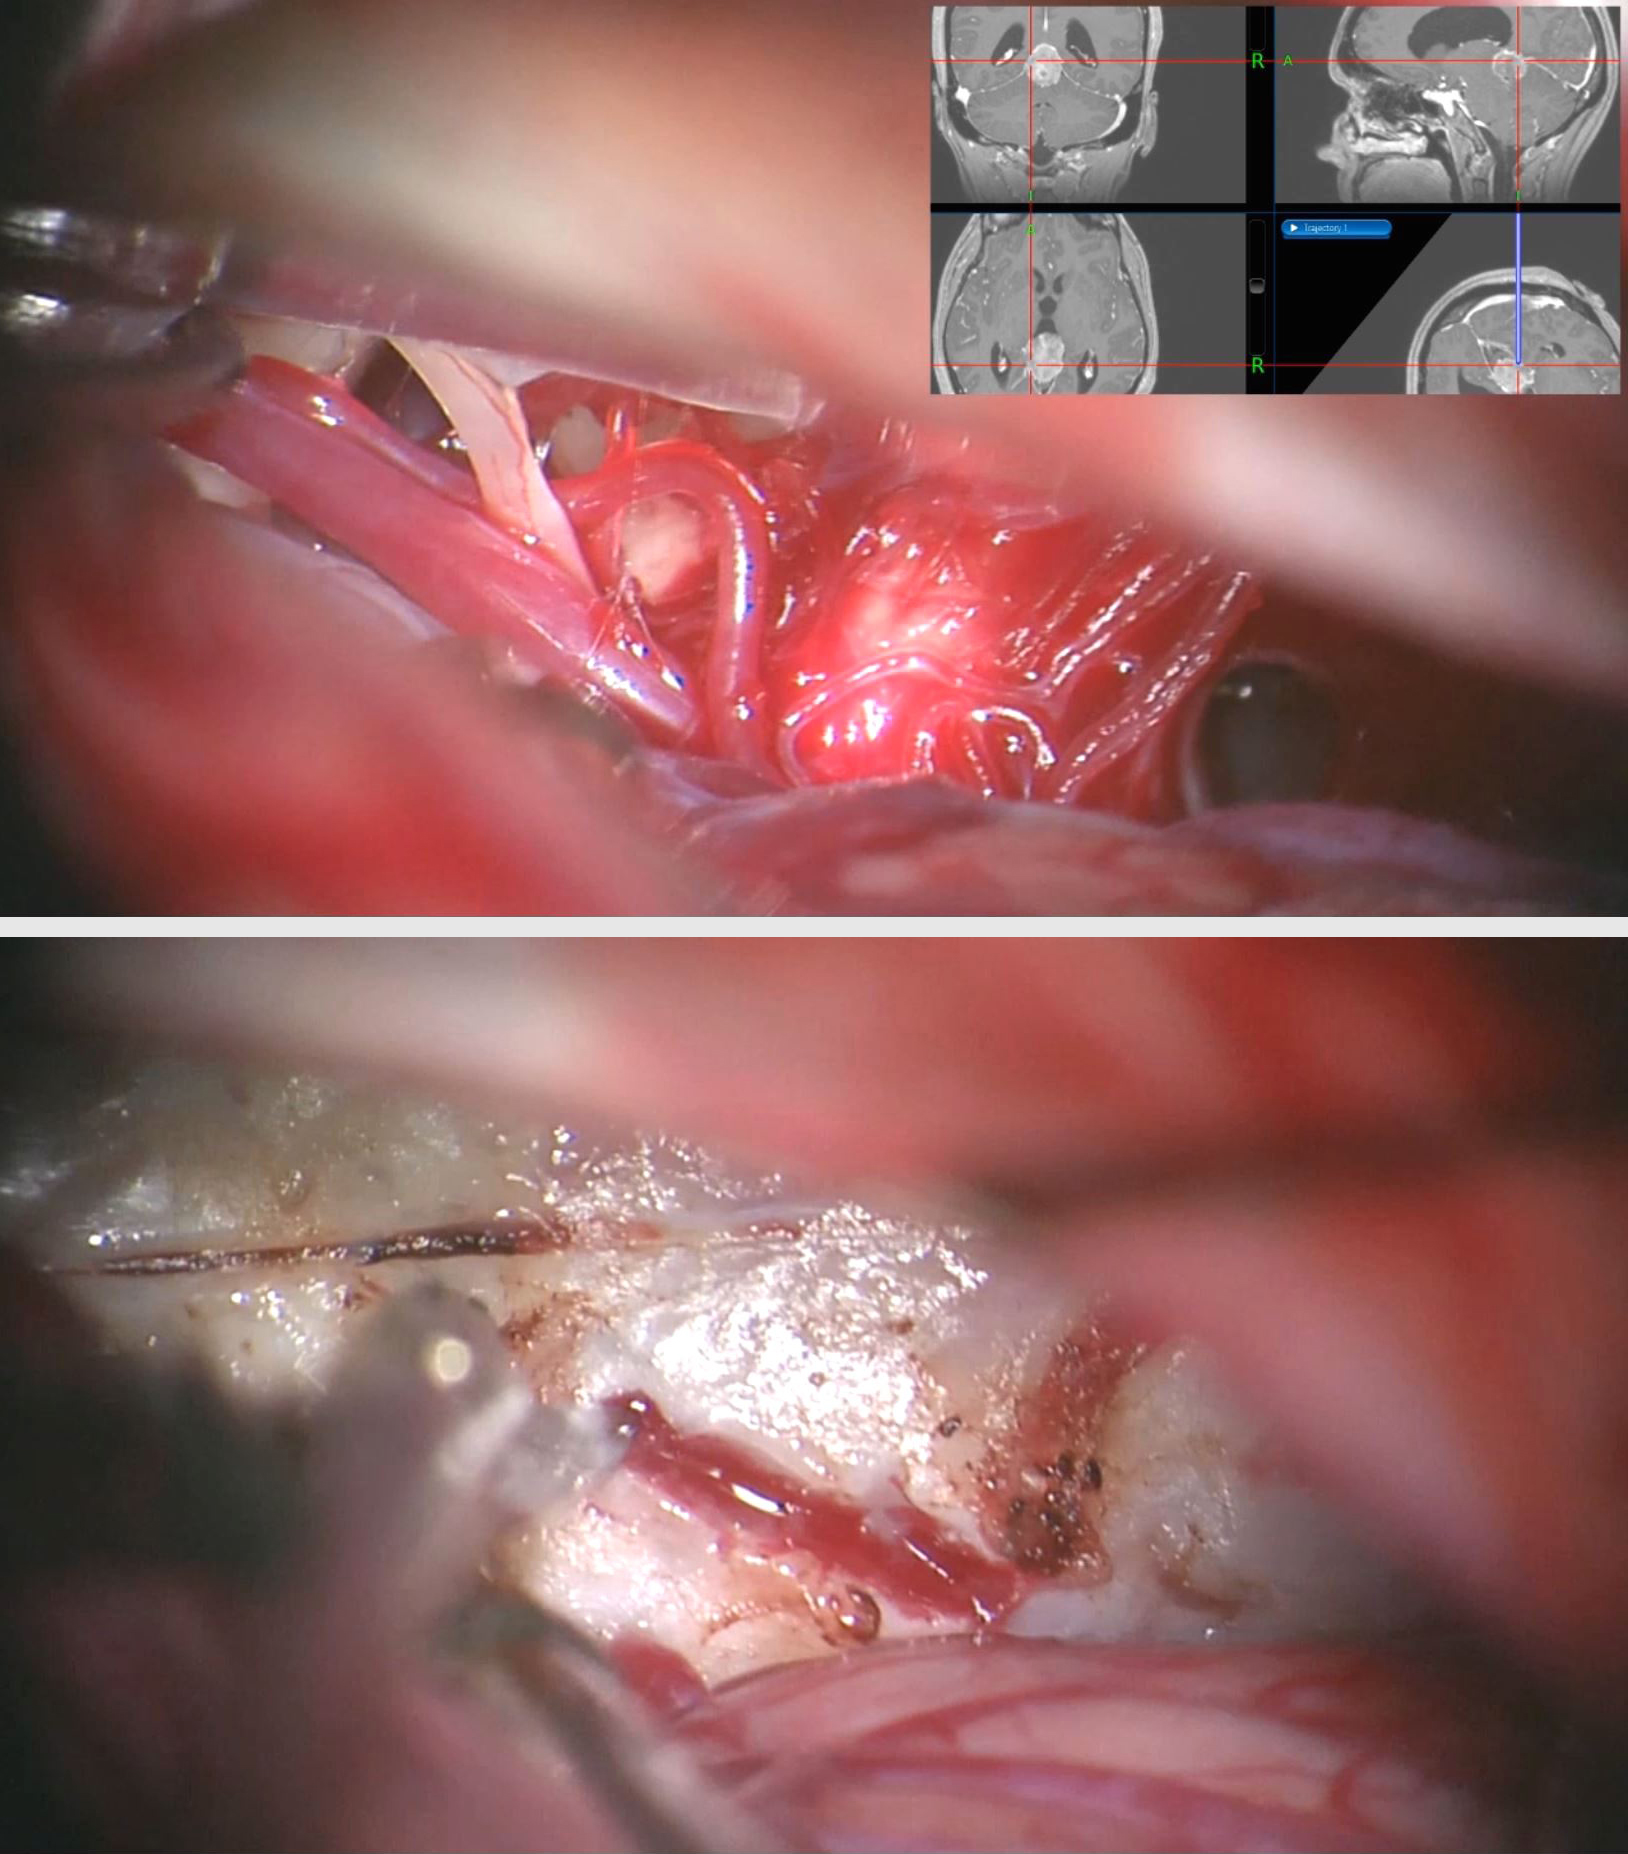 Figure 20: A left-sided paramedian supracerebellar route was used to resect a pineoblastoma. Note CN IV on the left side of the top photo. The branches of the superior cerebellar artery were mobilized. The bottom image demonstrates the posterior tumor capsule via the unilateral approach.